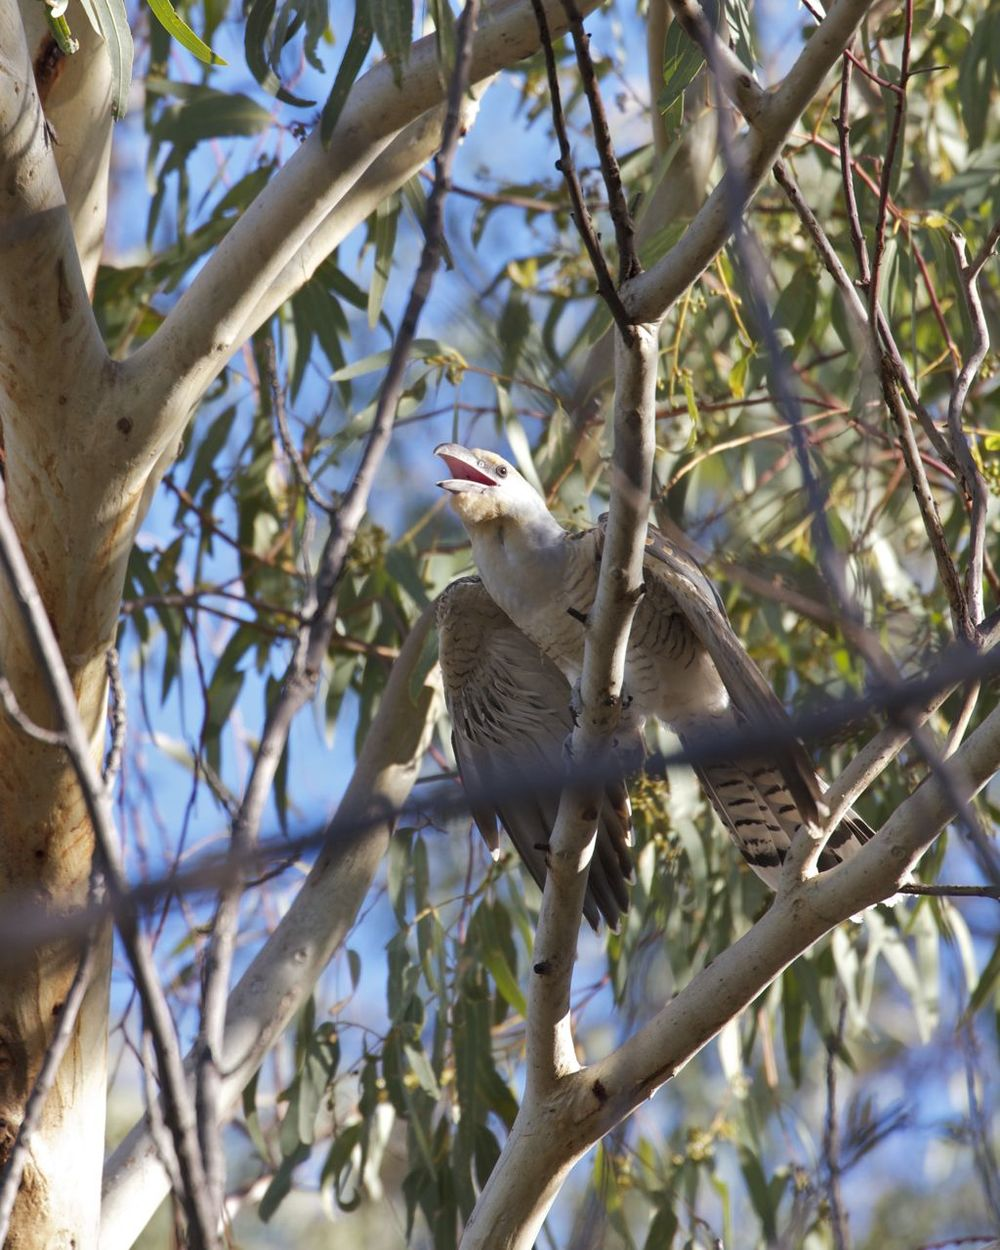 Channel-bill Cuckoo juvenile, Alice Springs, NT